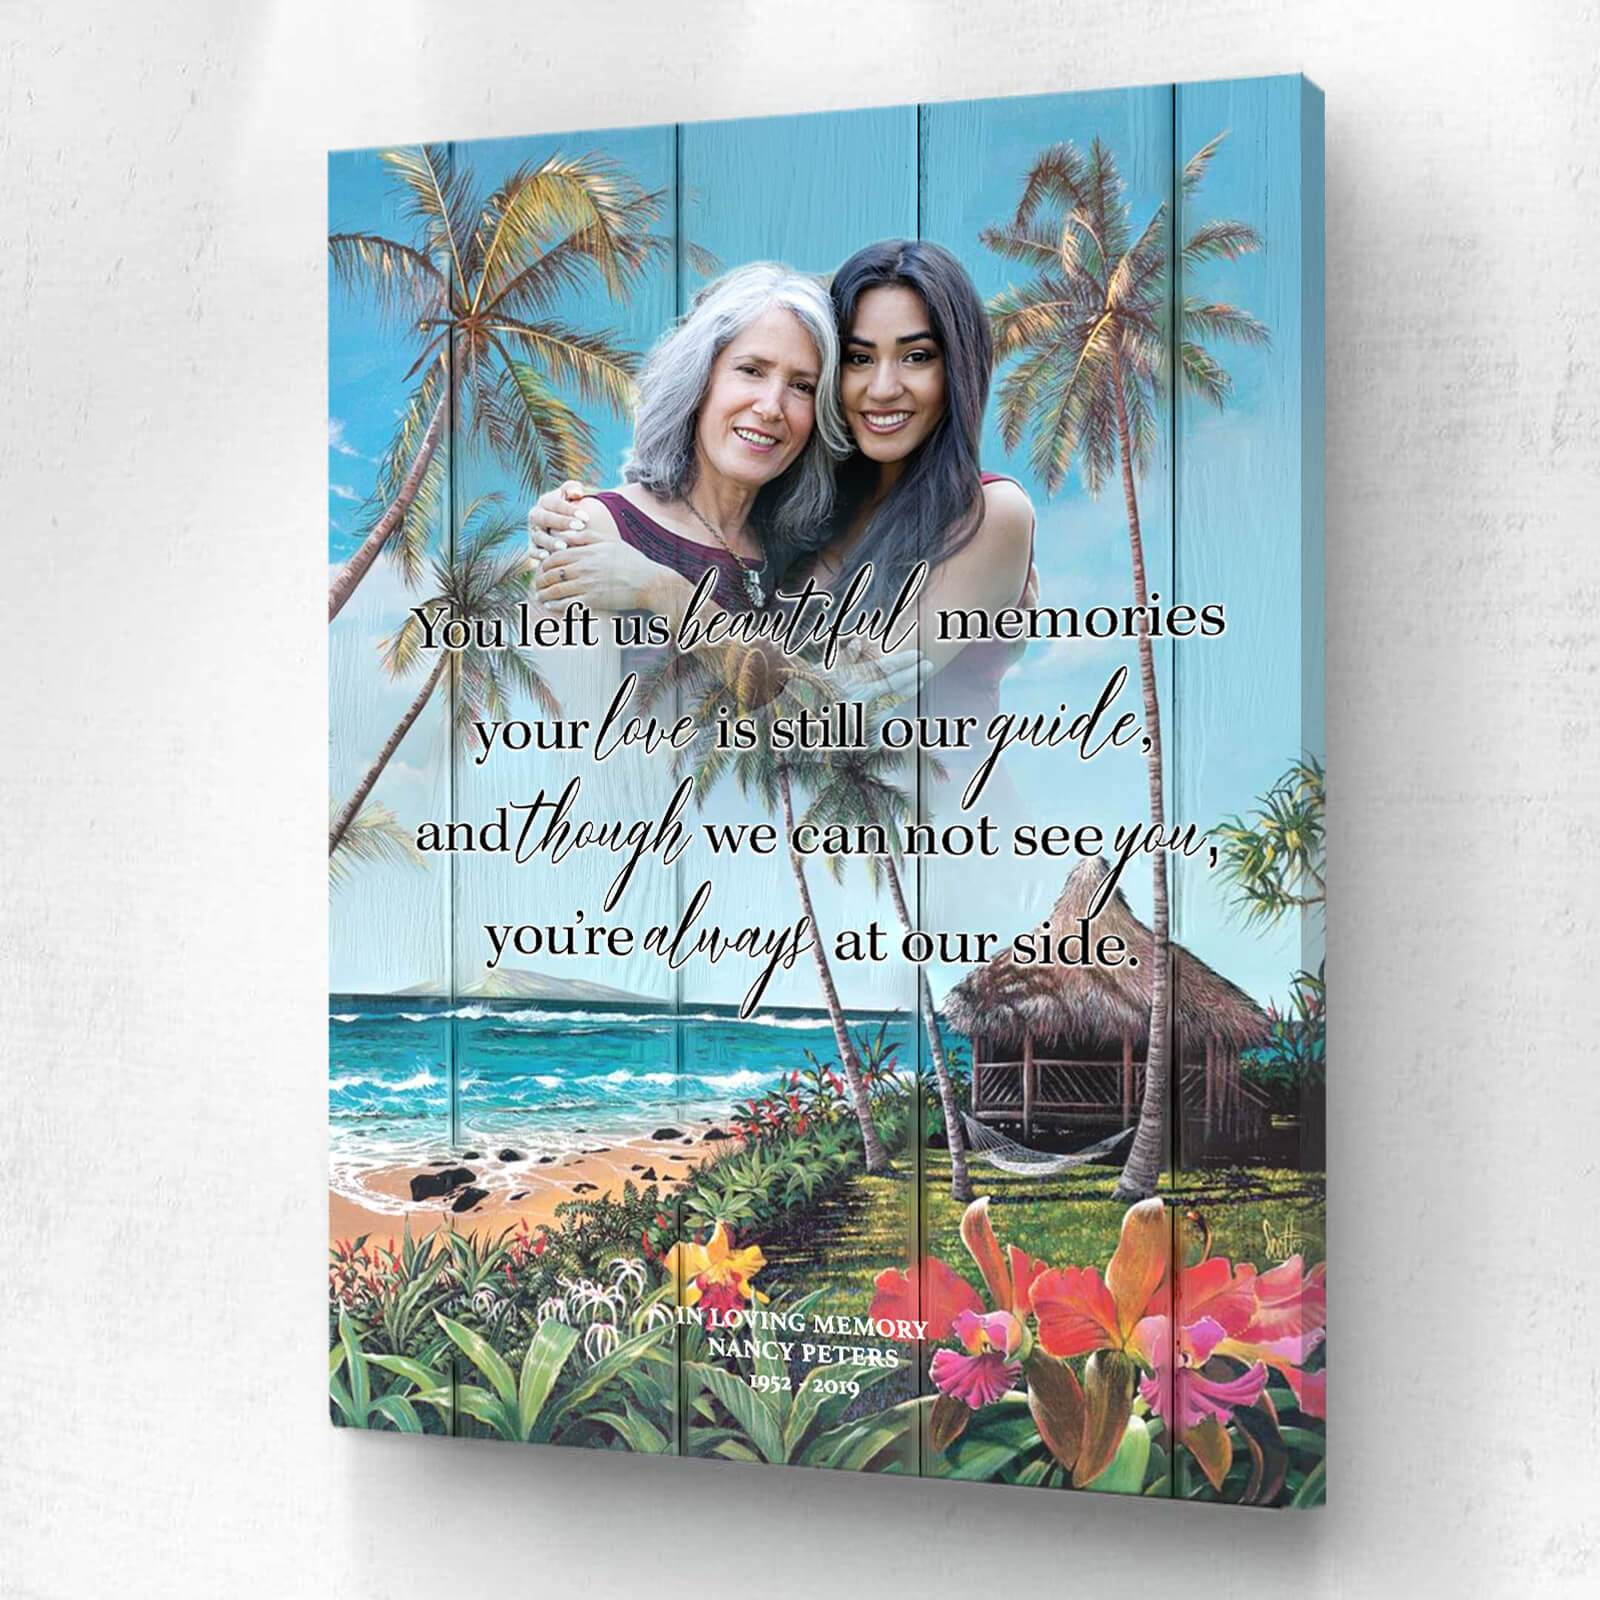 You Left Us Beautiful Memories - Seaclusion - Personalized Canvas